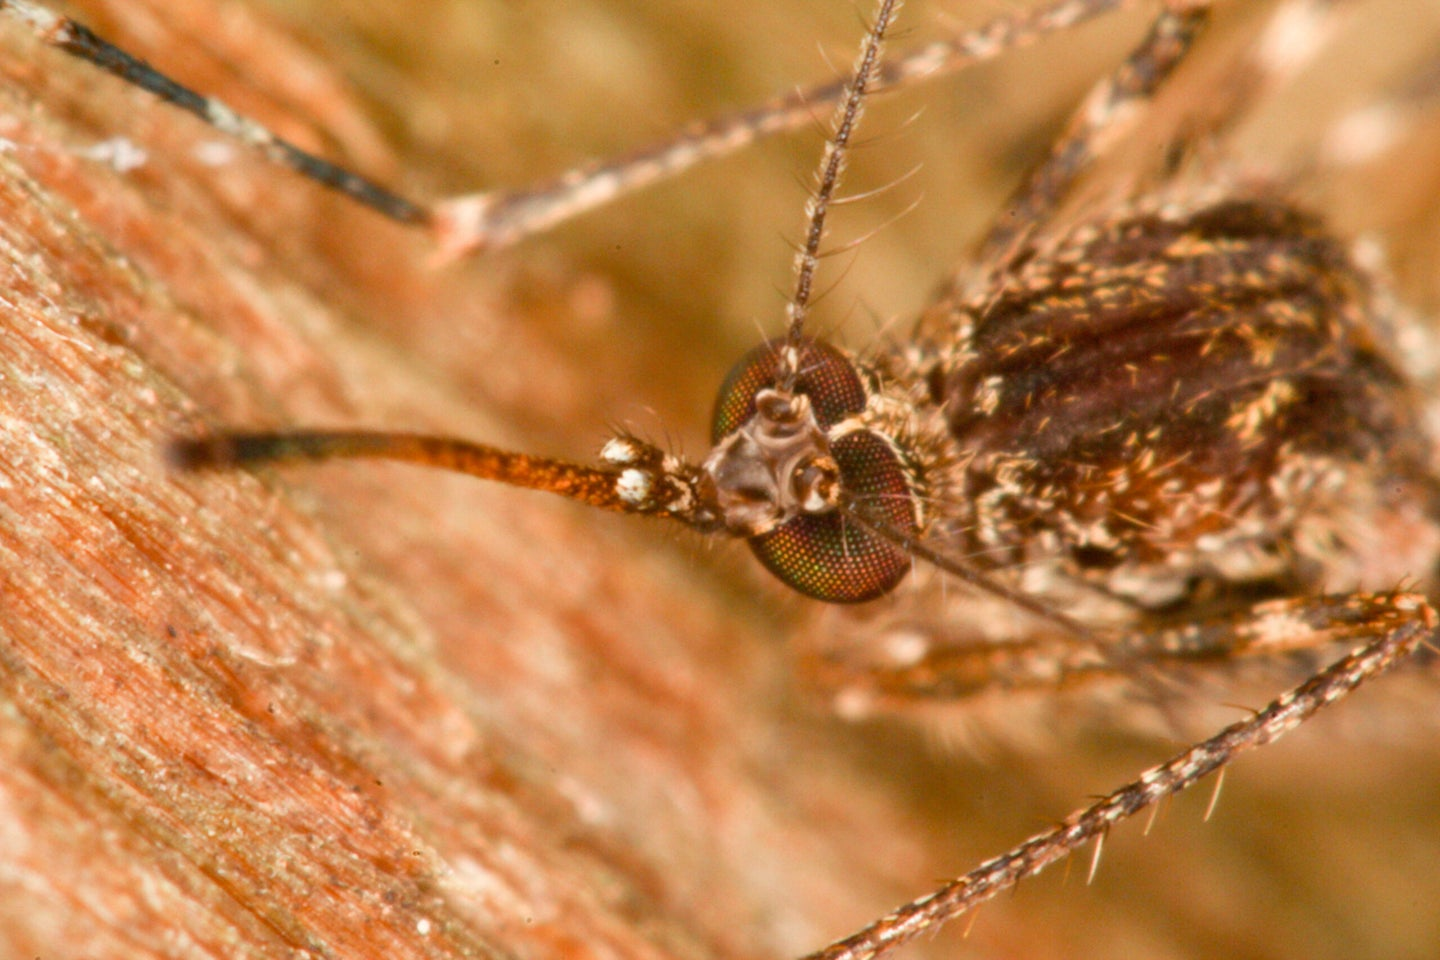 Droughts actually make West Nile virus worse